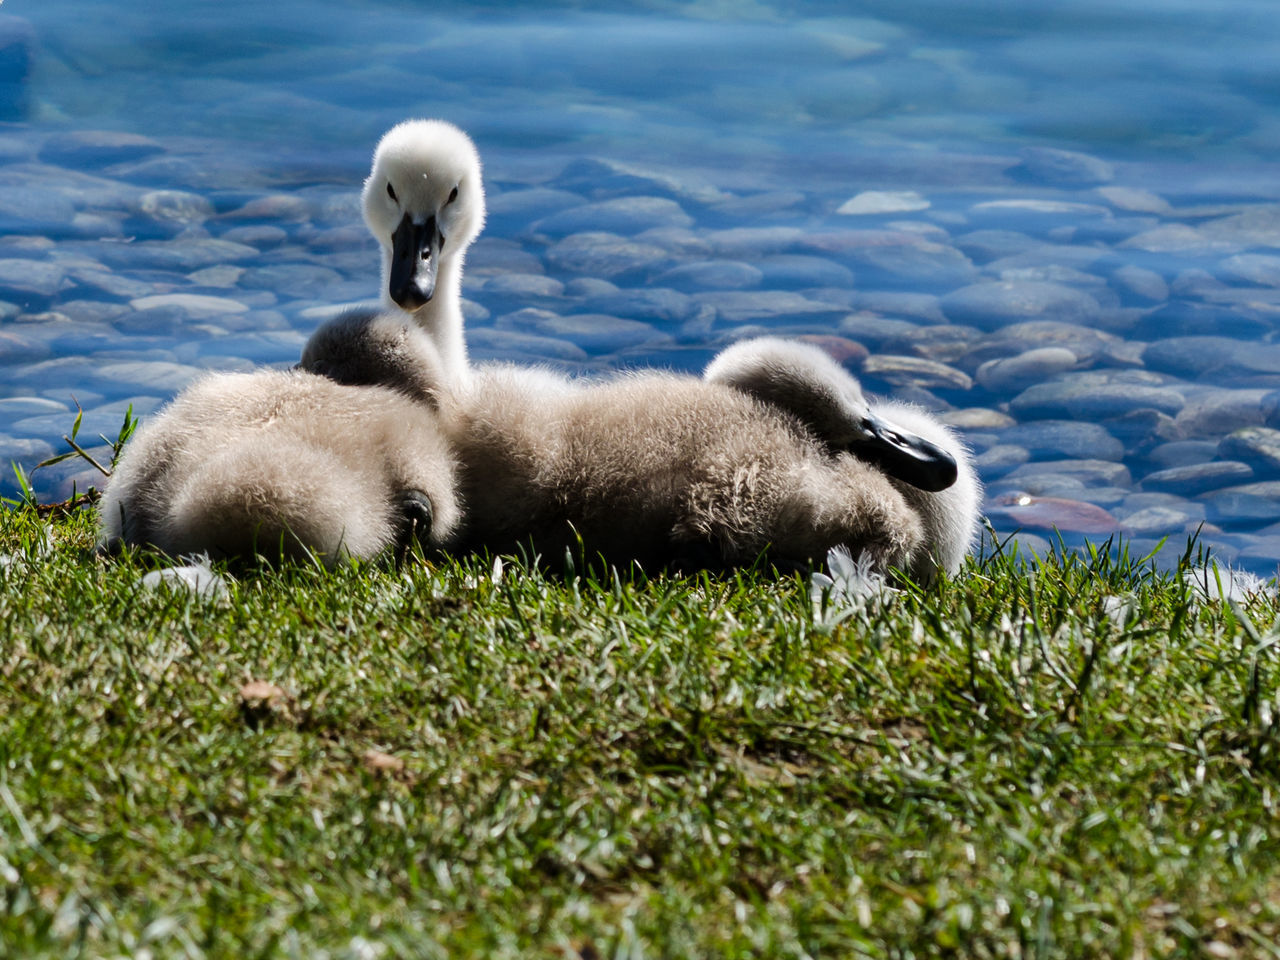 Cygnets Relaxing On Grassy Field By Lake